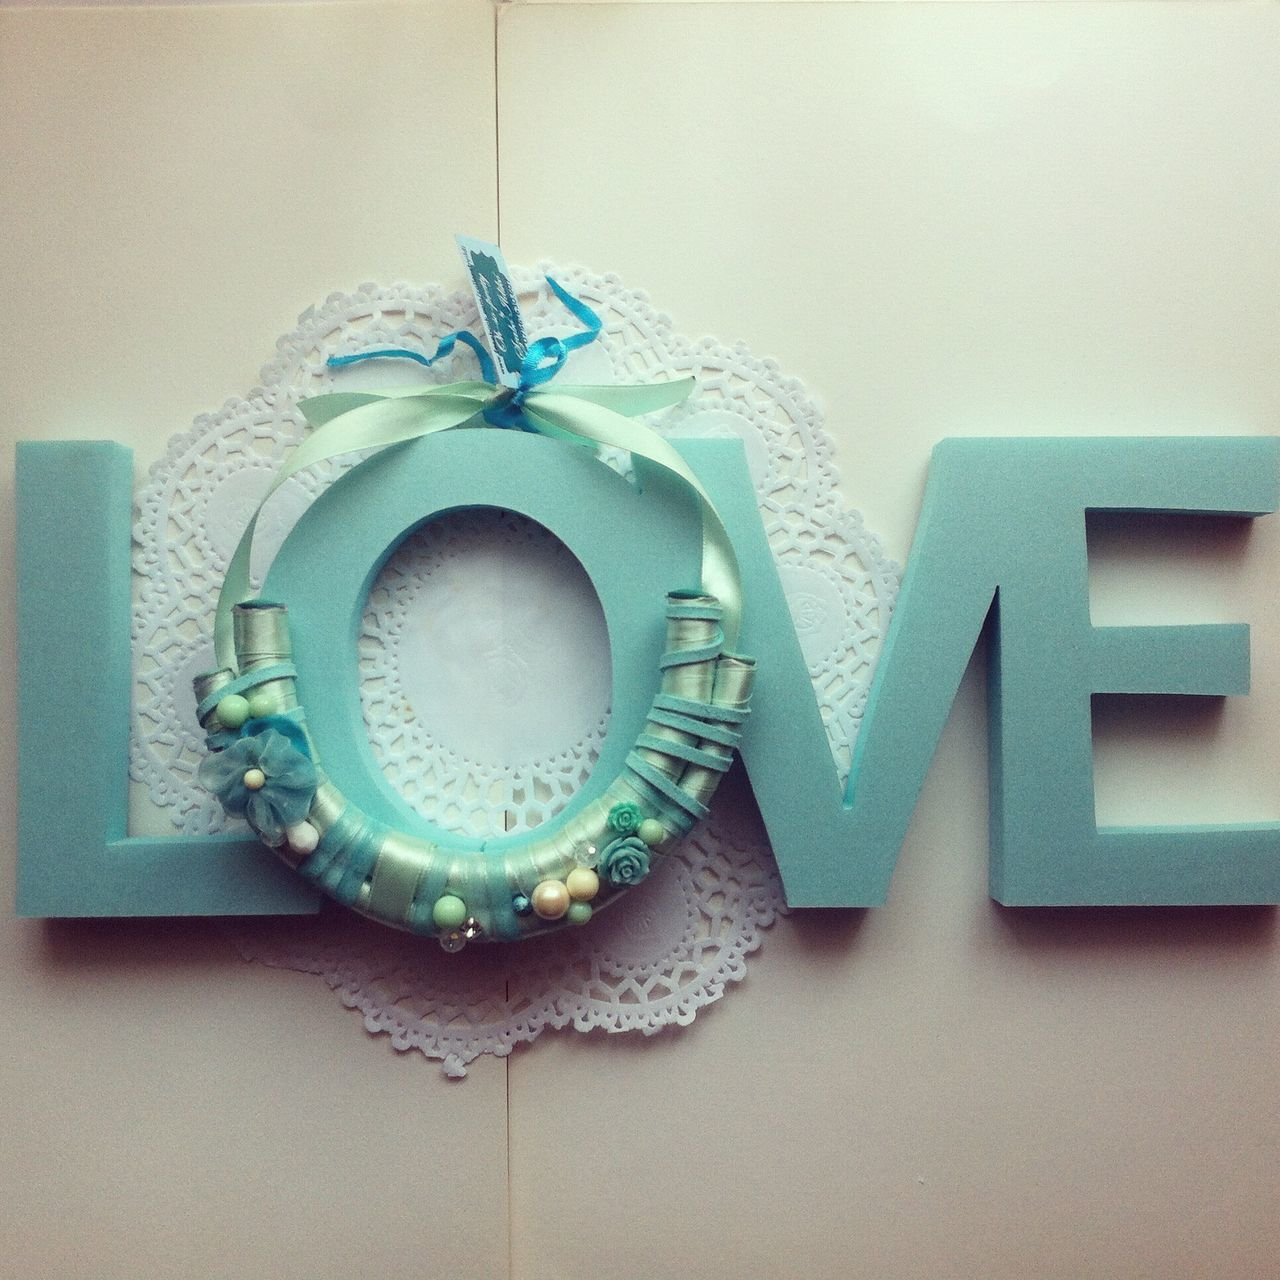 Handmade Necklace Statement Necklace Mint Green Details Tribal Inspired Love Cut Out Letters Letters My Unique Style